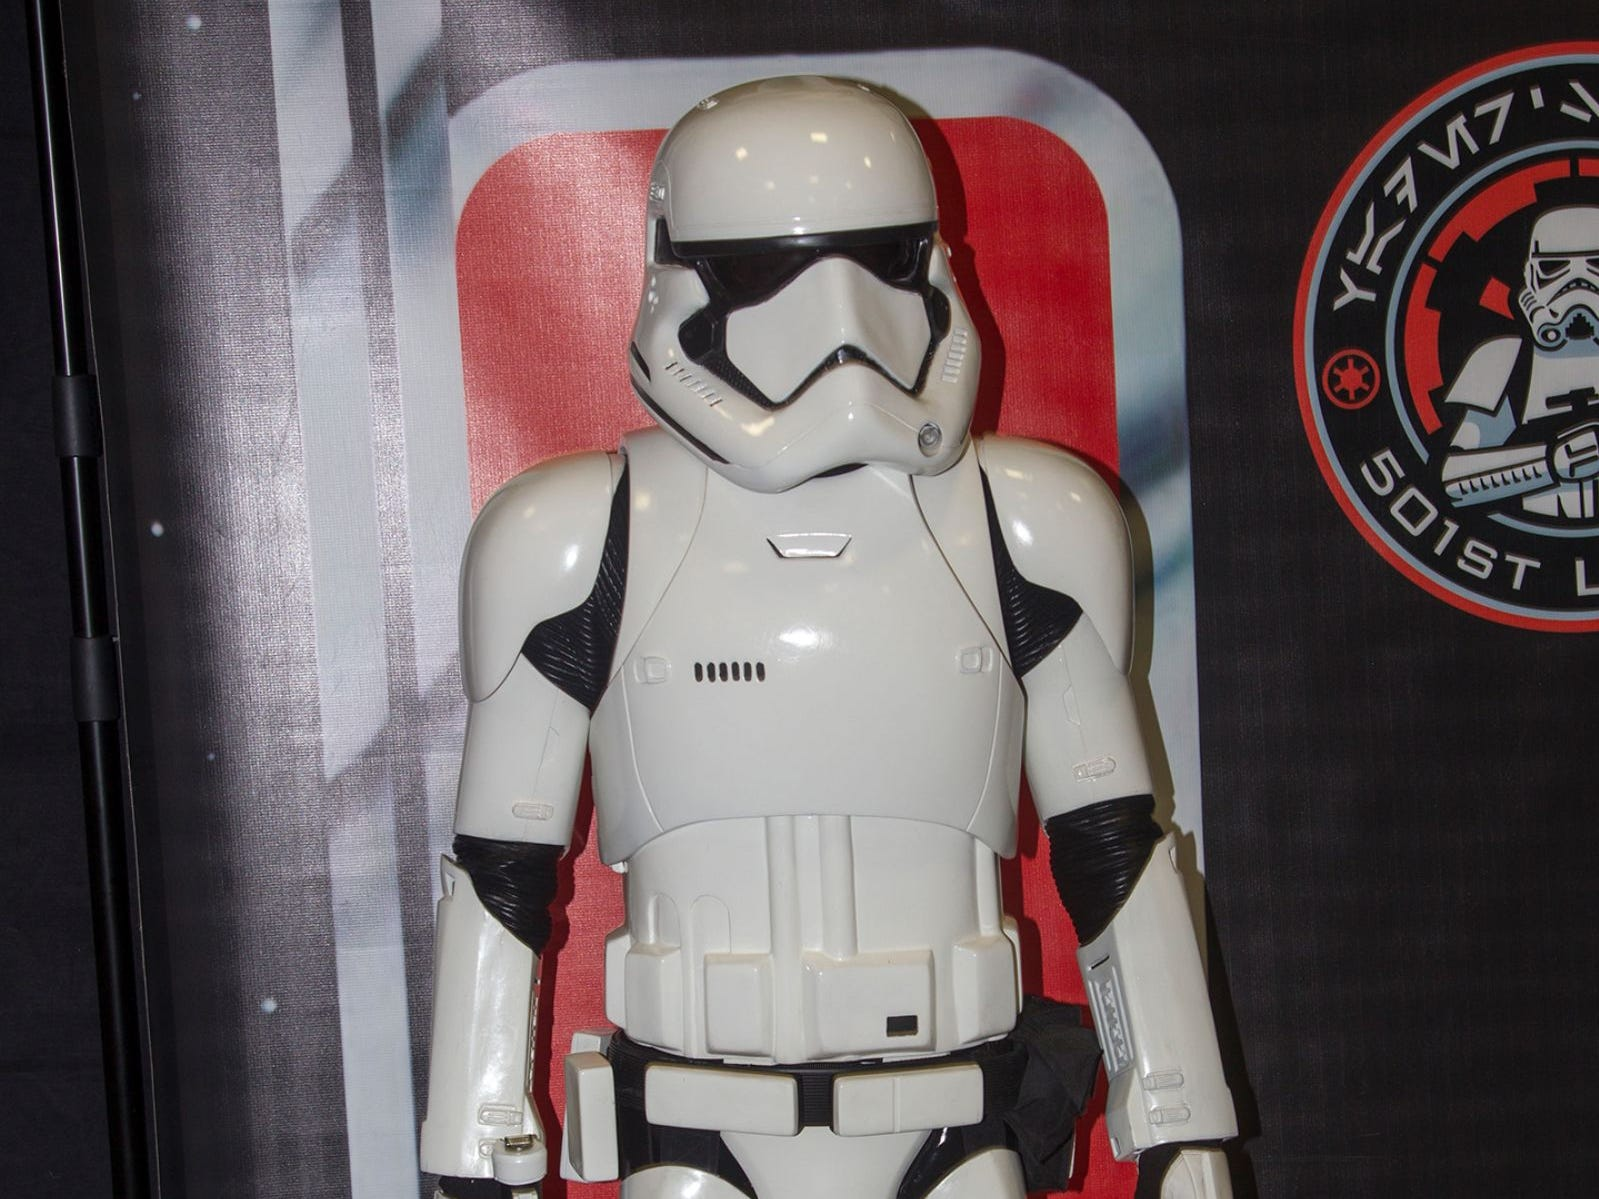 A Stormtrooper. The 2018 Heroes and Villains Fan Fest took place at the New Jersey Convention & Expo Center. 09/09/2018